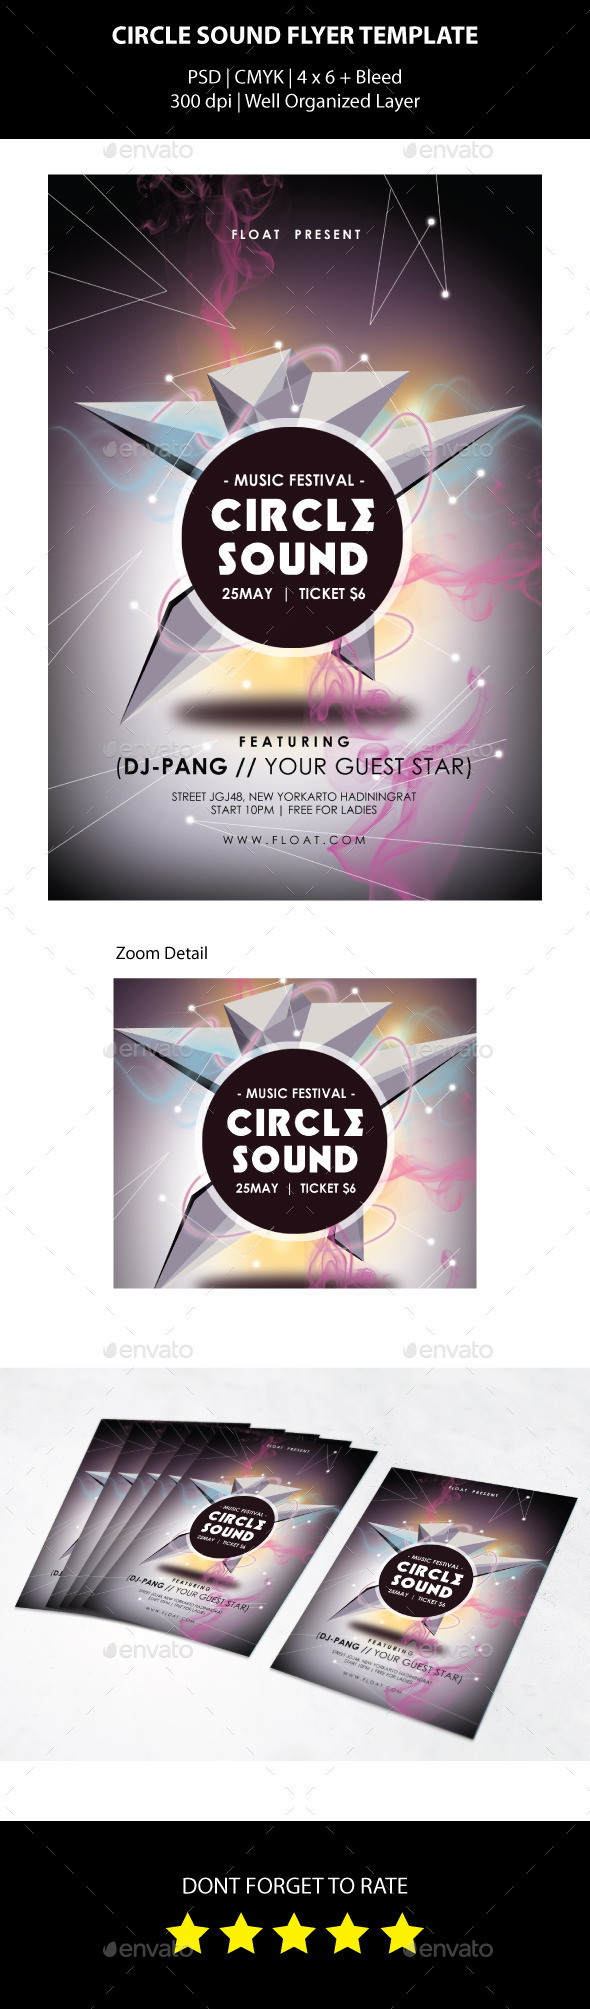 GraphicRiver Circle Sound Flyer Template 10132268